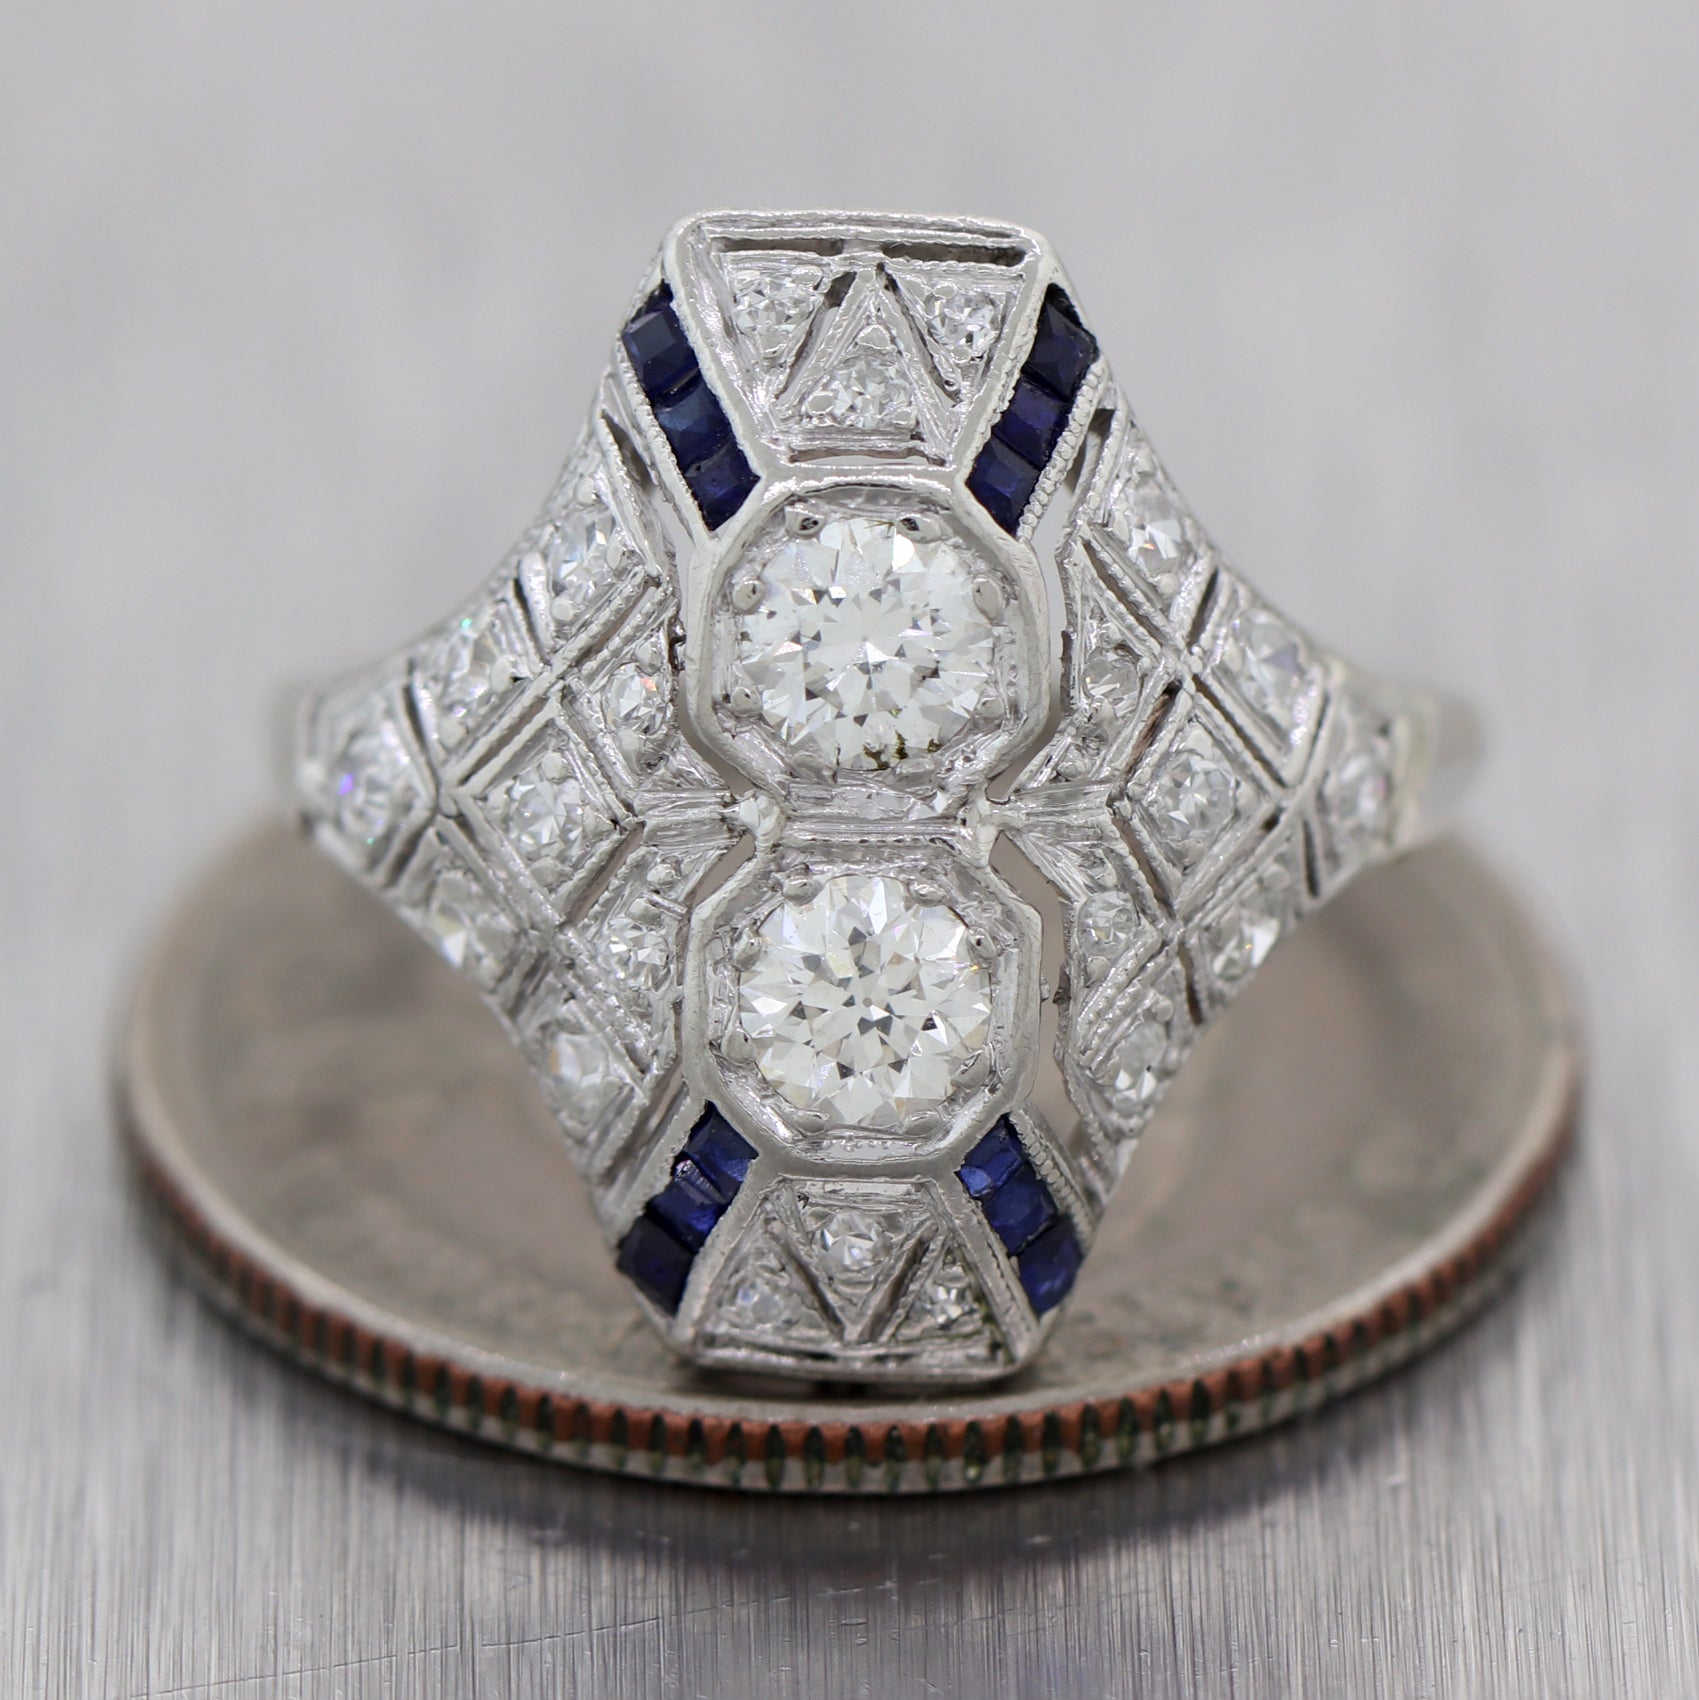 1920's Antique Art Deco 14k White Gold 1.15ctw Diamond & Sapphire Cocktail Ring